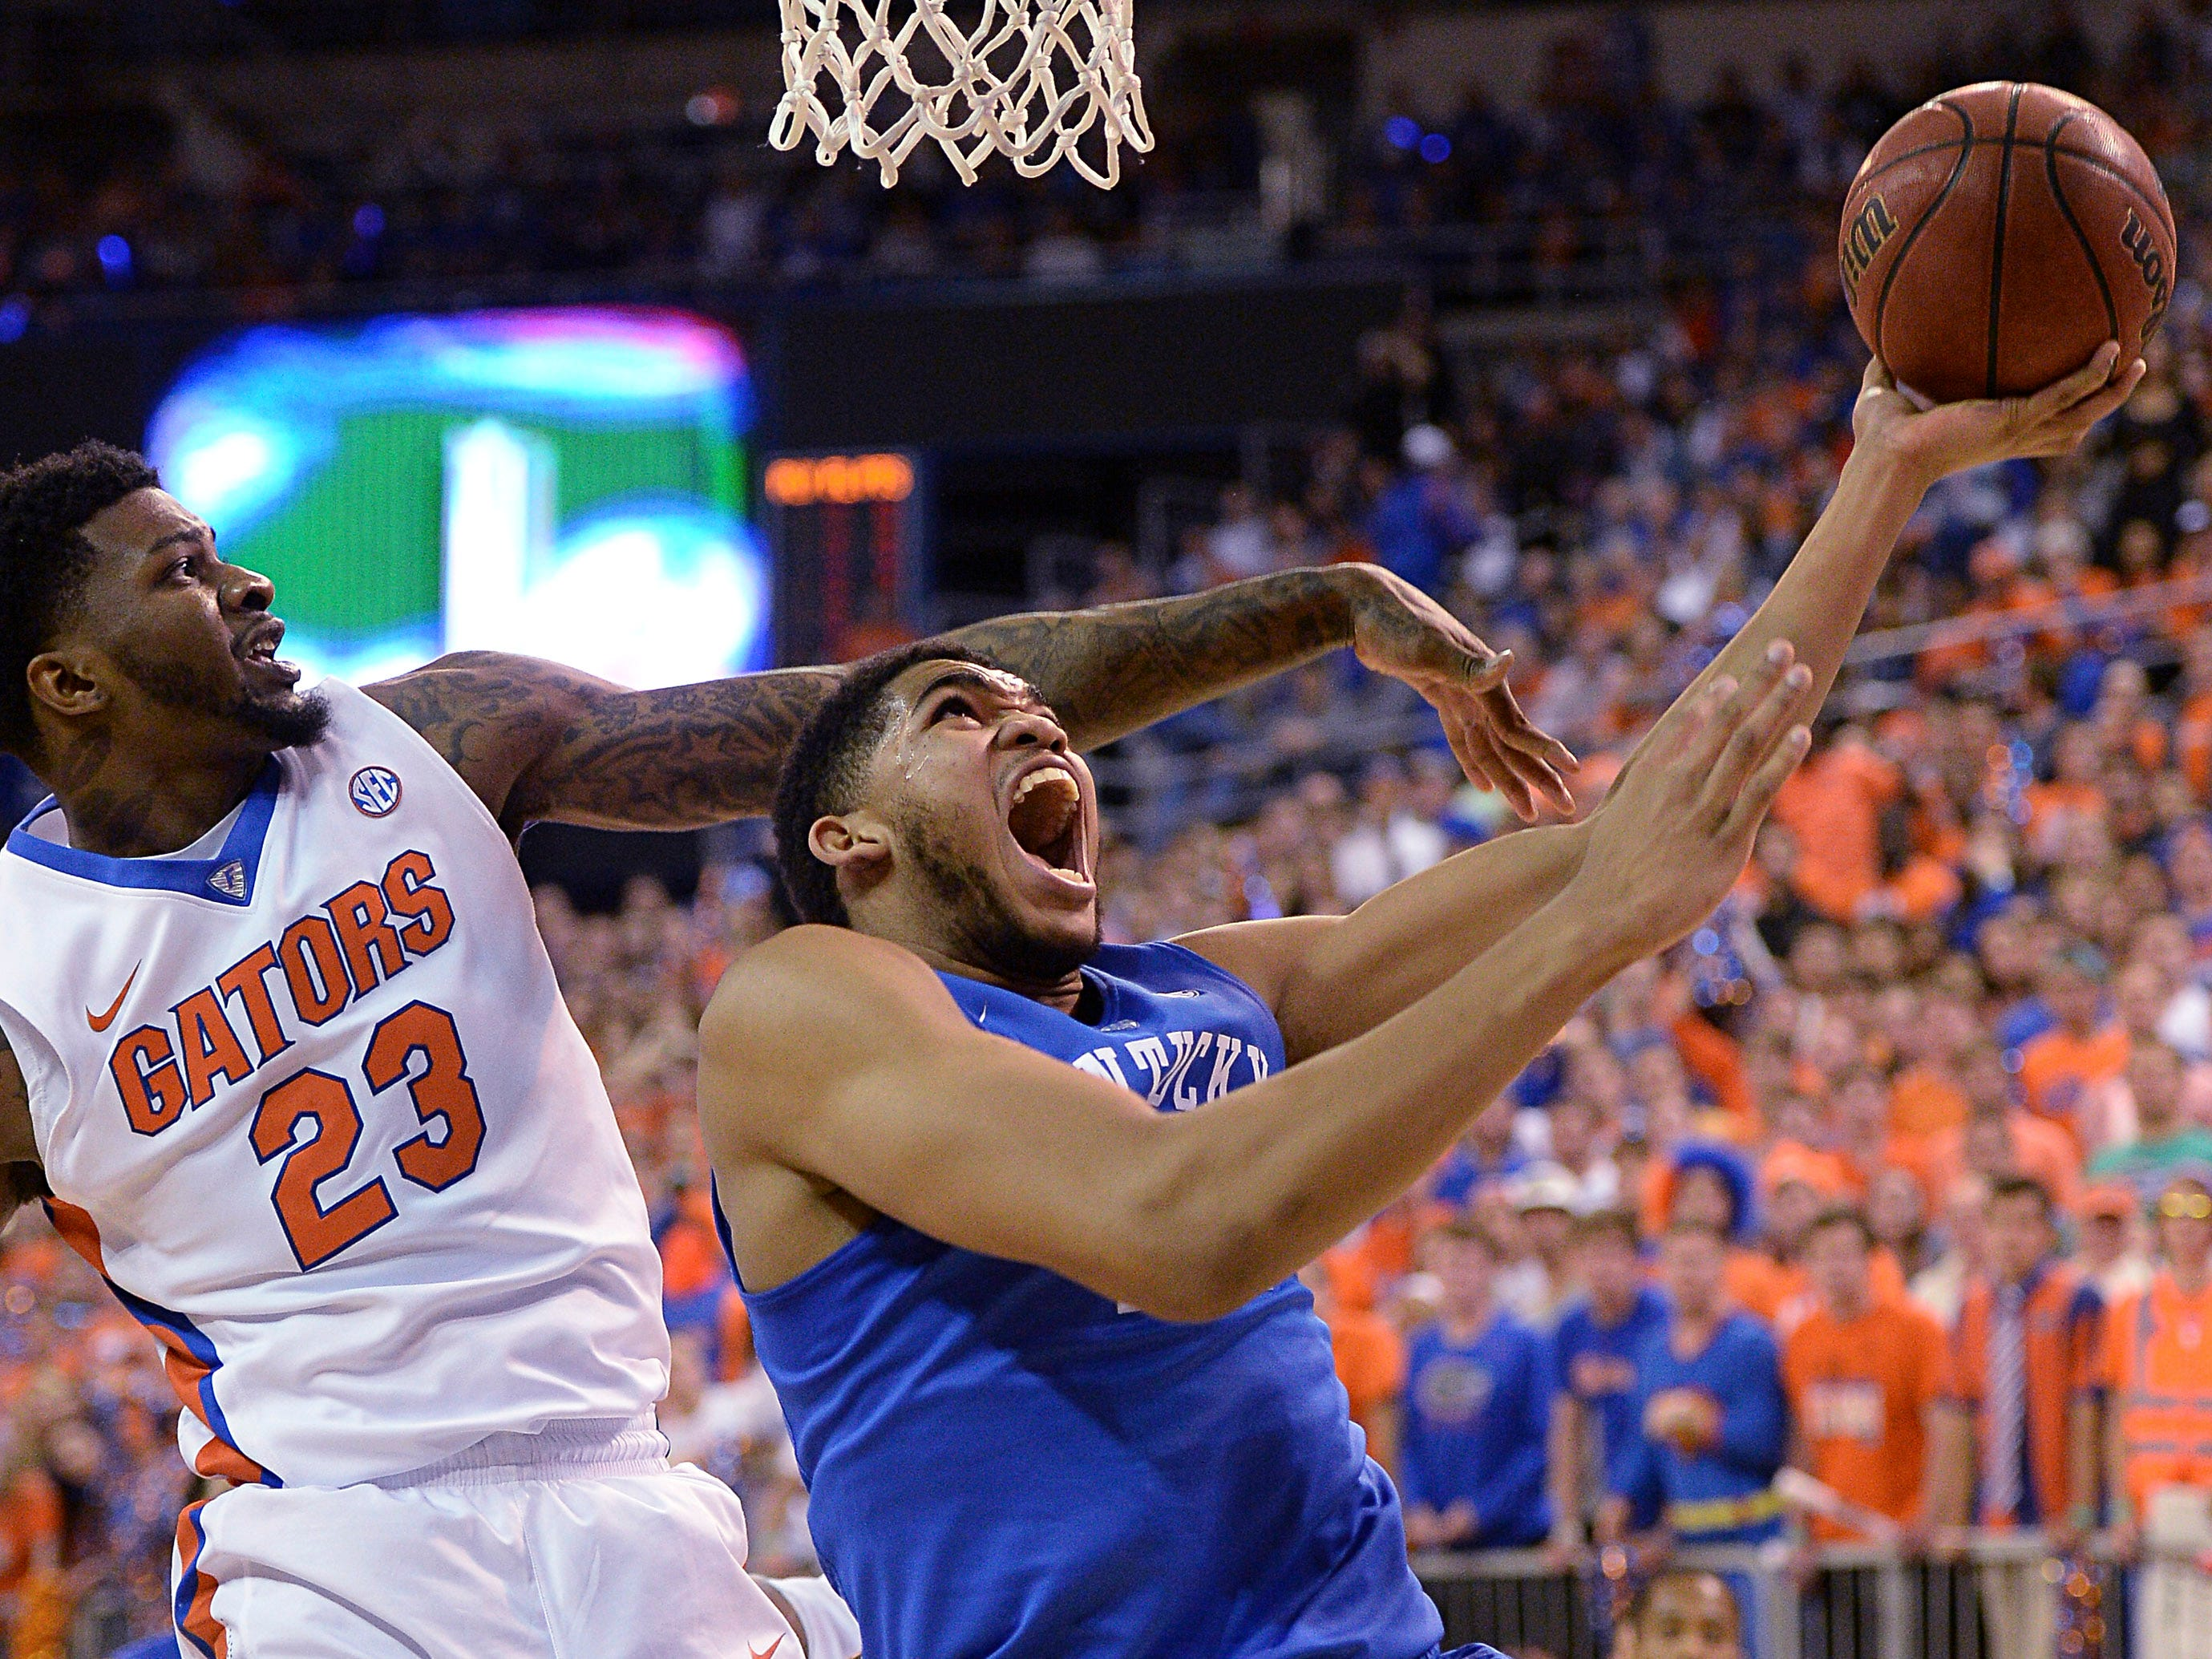 FIXES SCORE - Florida forward Chris Walker (23) pressures Kentucky forward Karl-Anthony Towns (12) during the first half of an NCAA college basketball game in Gainesville, Fla., Saturday, Feb. 7, 2015. Kentucky defeated Florida 68-61. (AP Photo/Phil Sandlin)